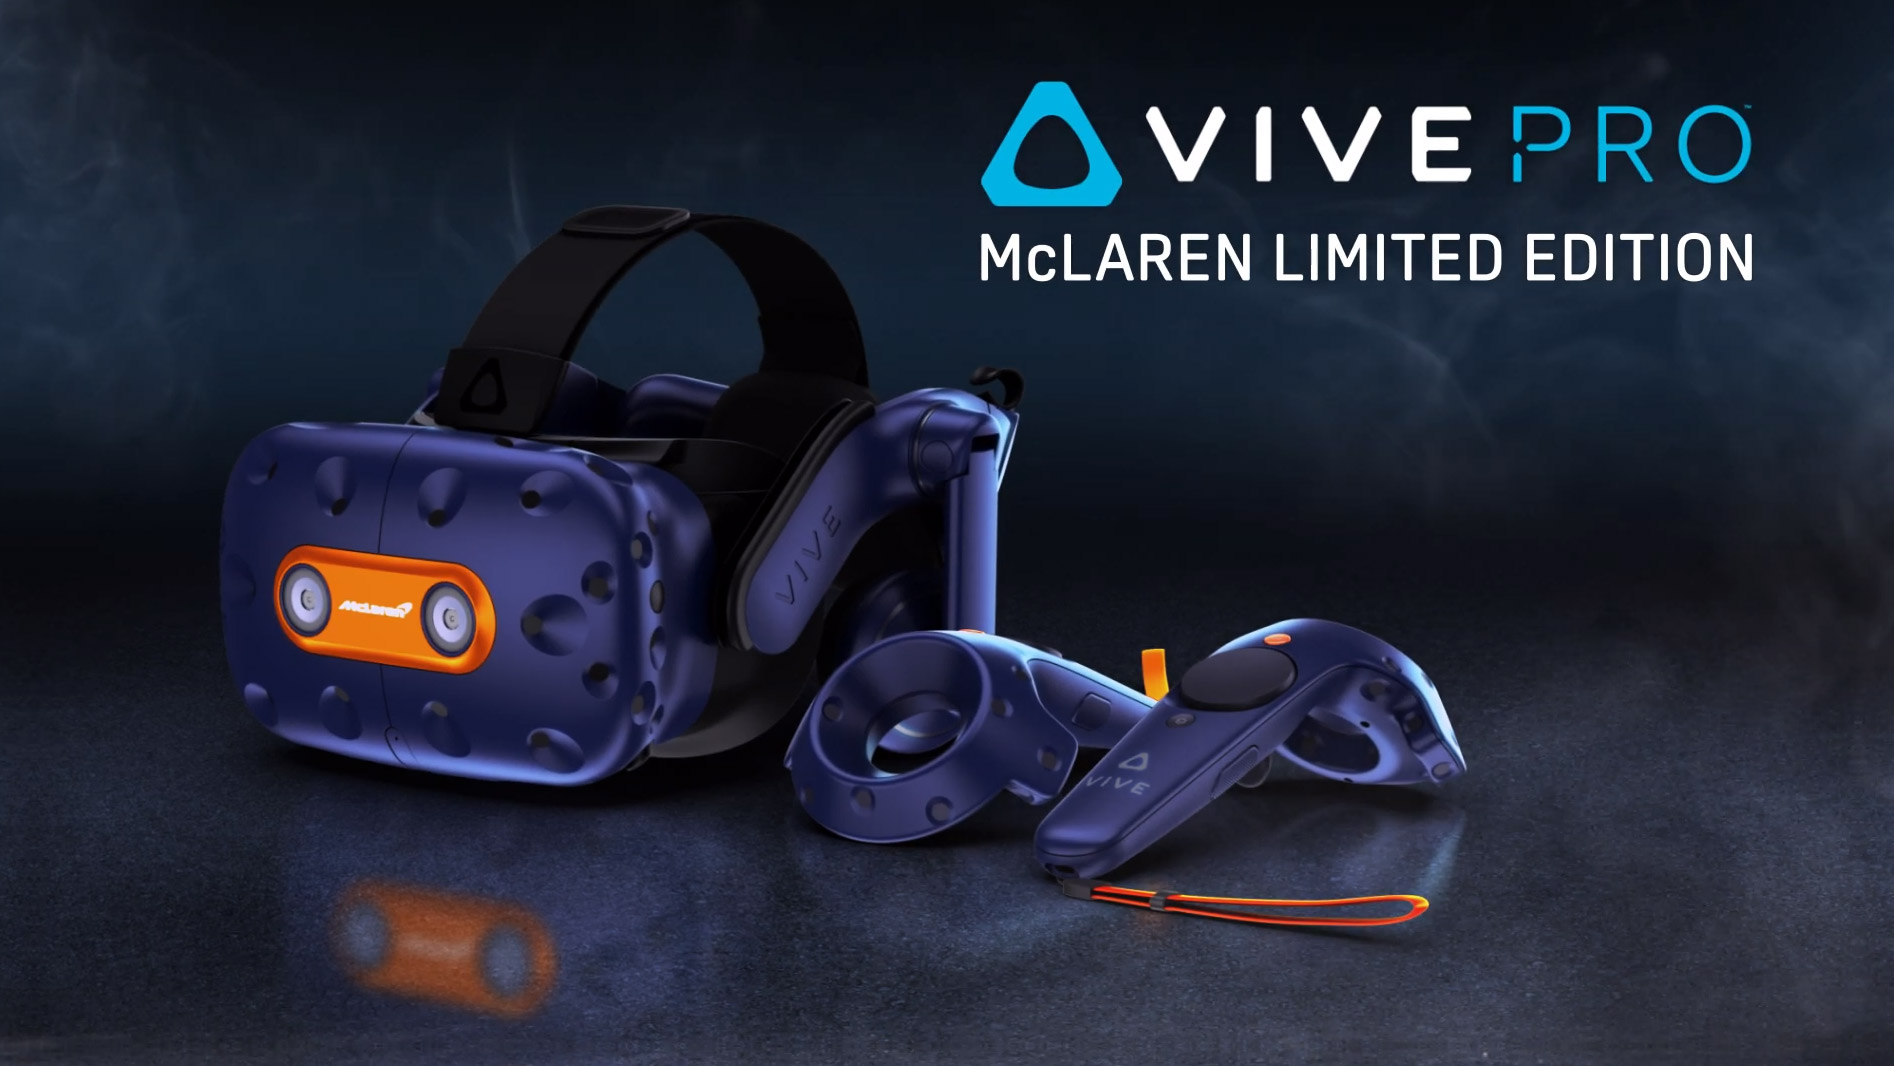 $1,550 Vive Pro McLaren Edition Further Confuses the